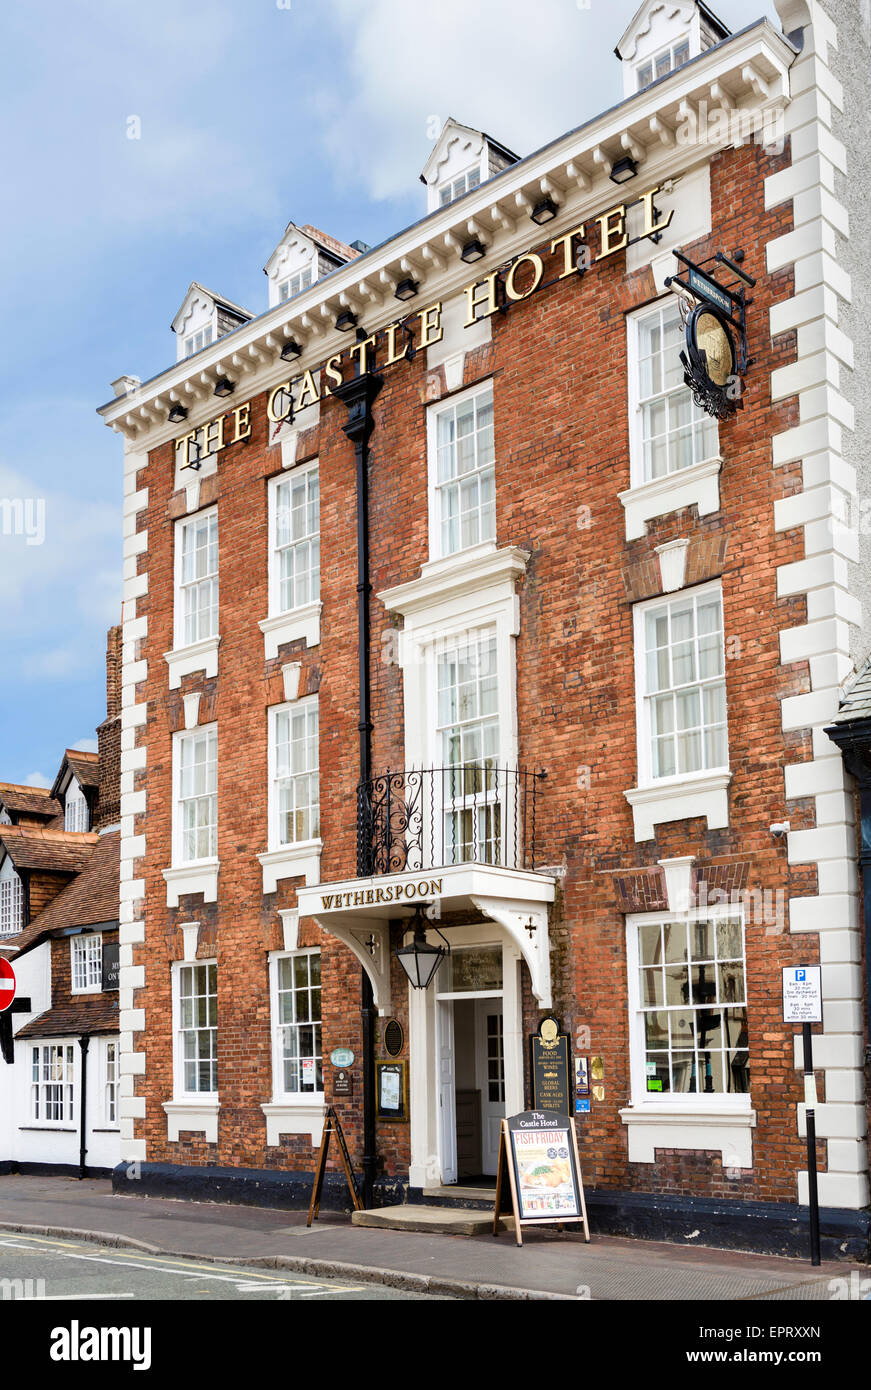 The Castle Hotel, a Wetherspoon pub on St Peter's Square in the centre of Ruthin, Denbighshire, Wales, UK - Stock Image